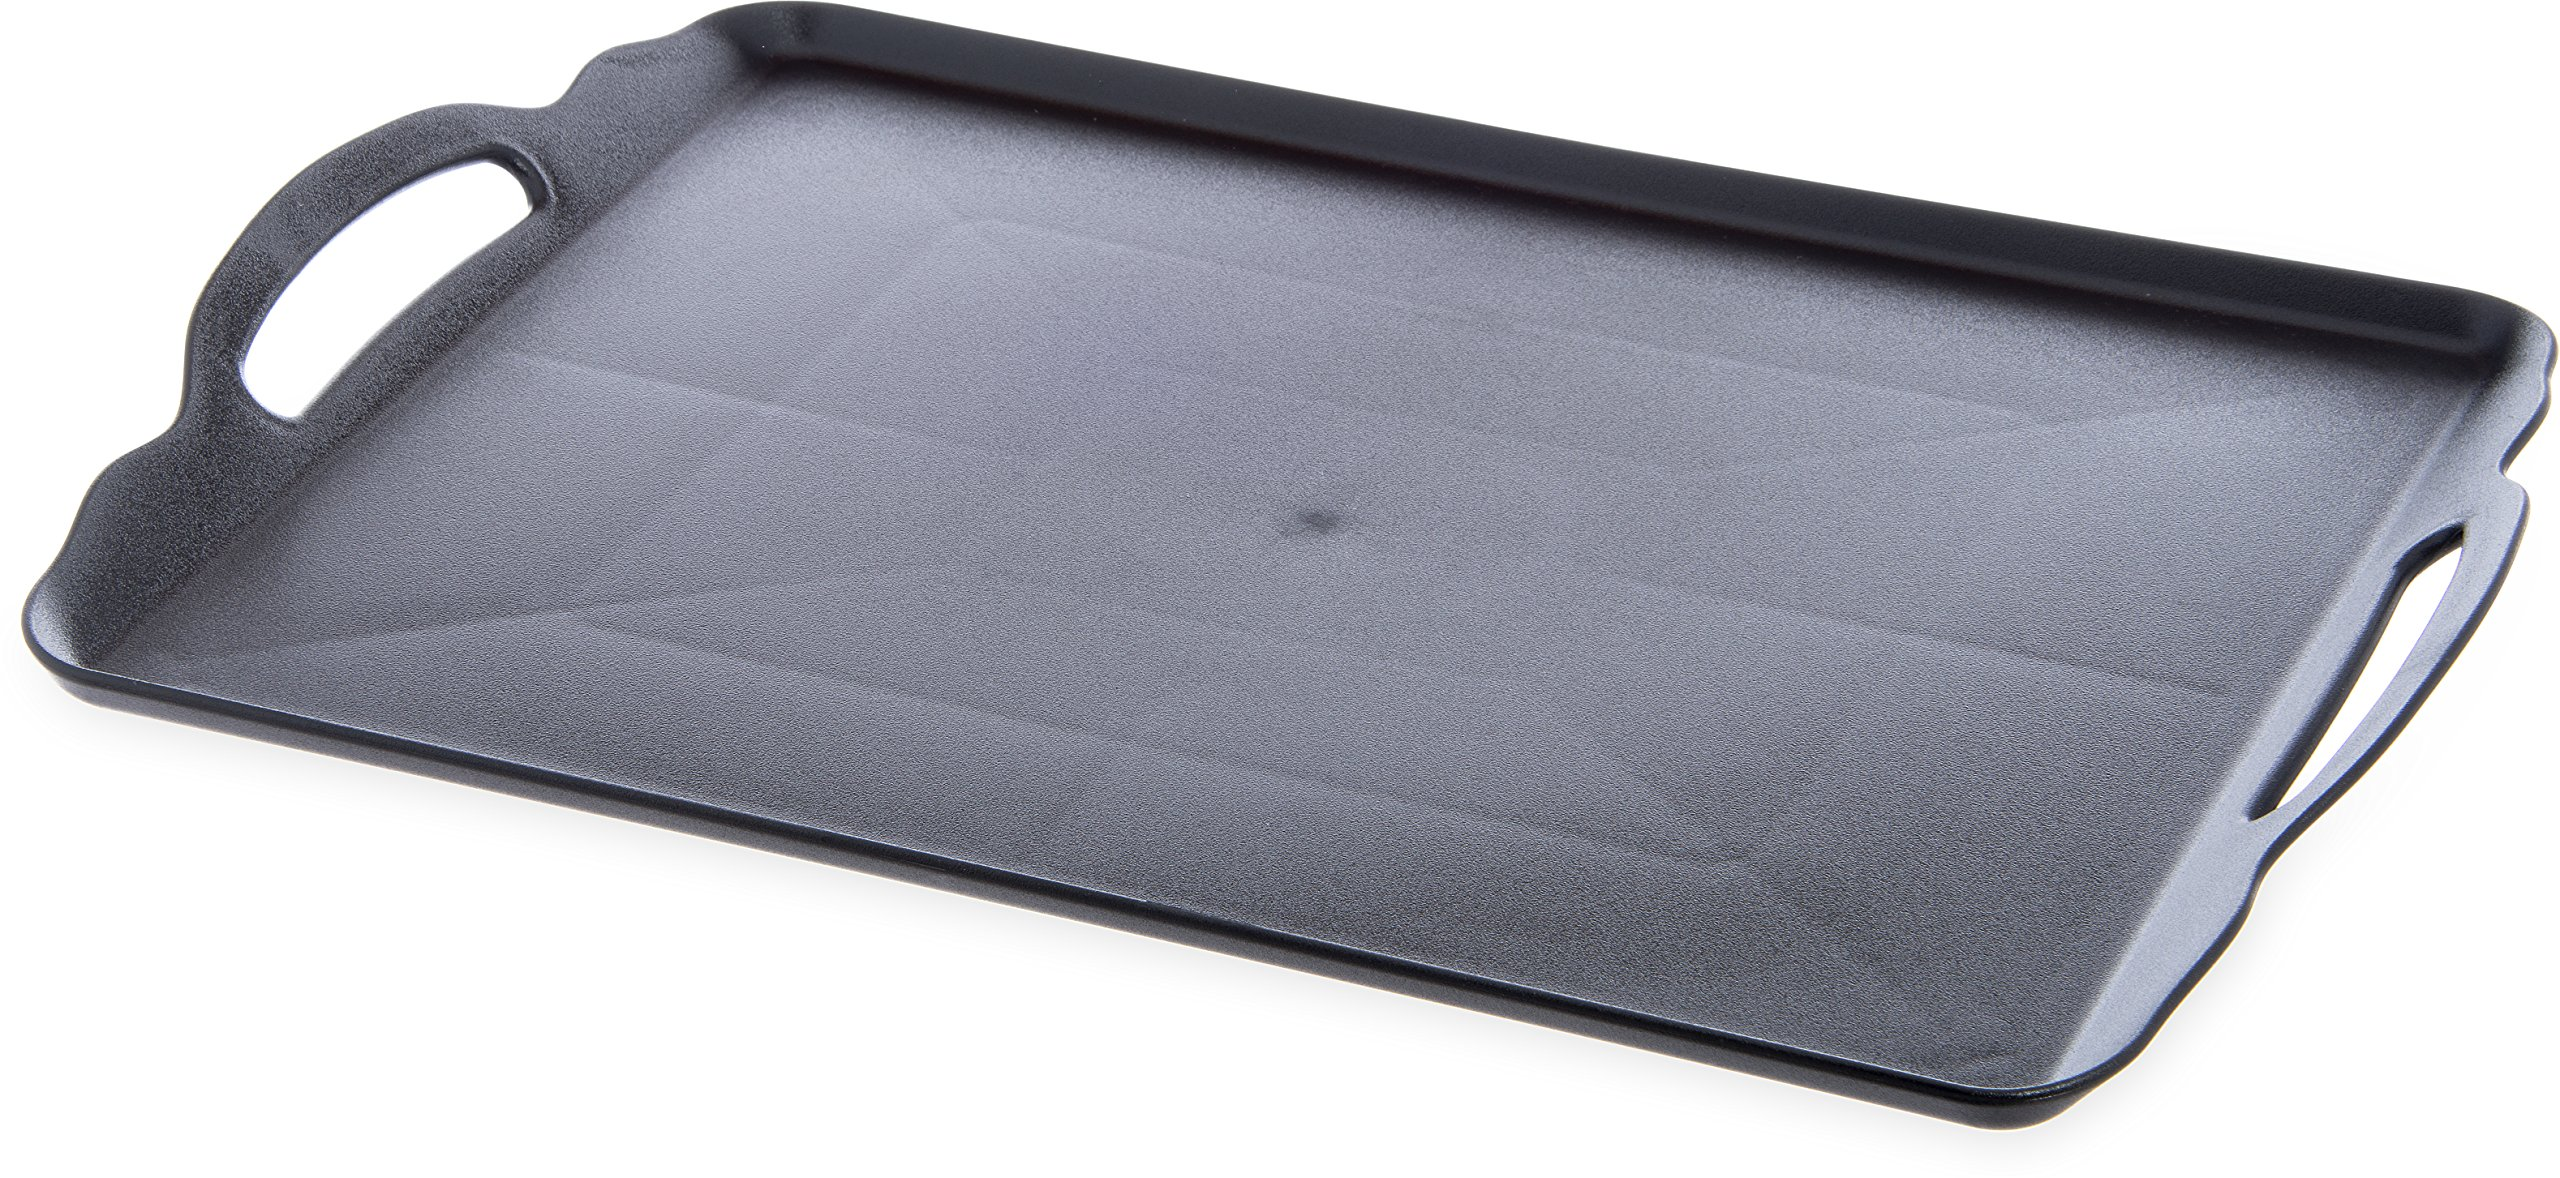 Carlisle RST152003 Room Service Serving Tray with Handles, 15'' x 20'', Black